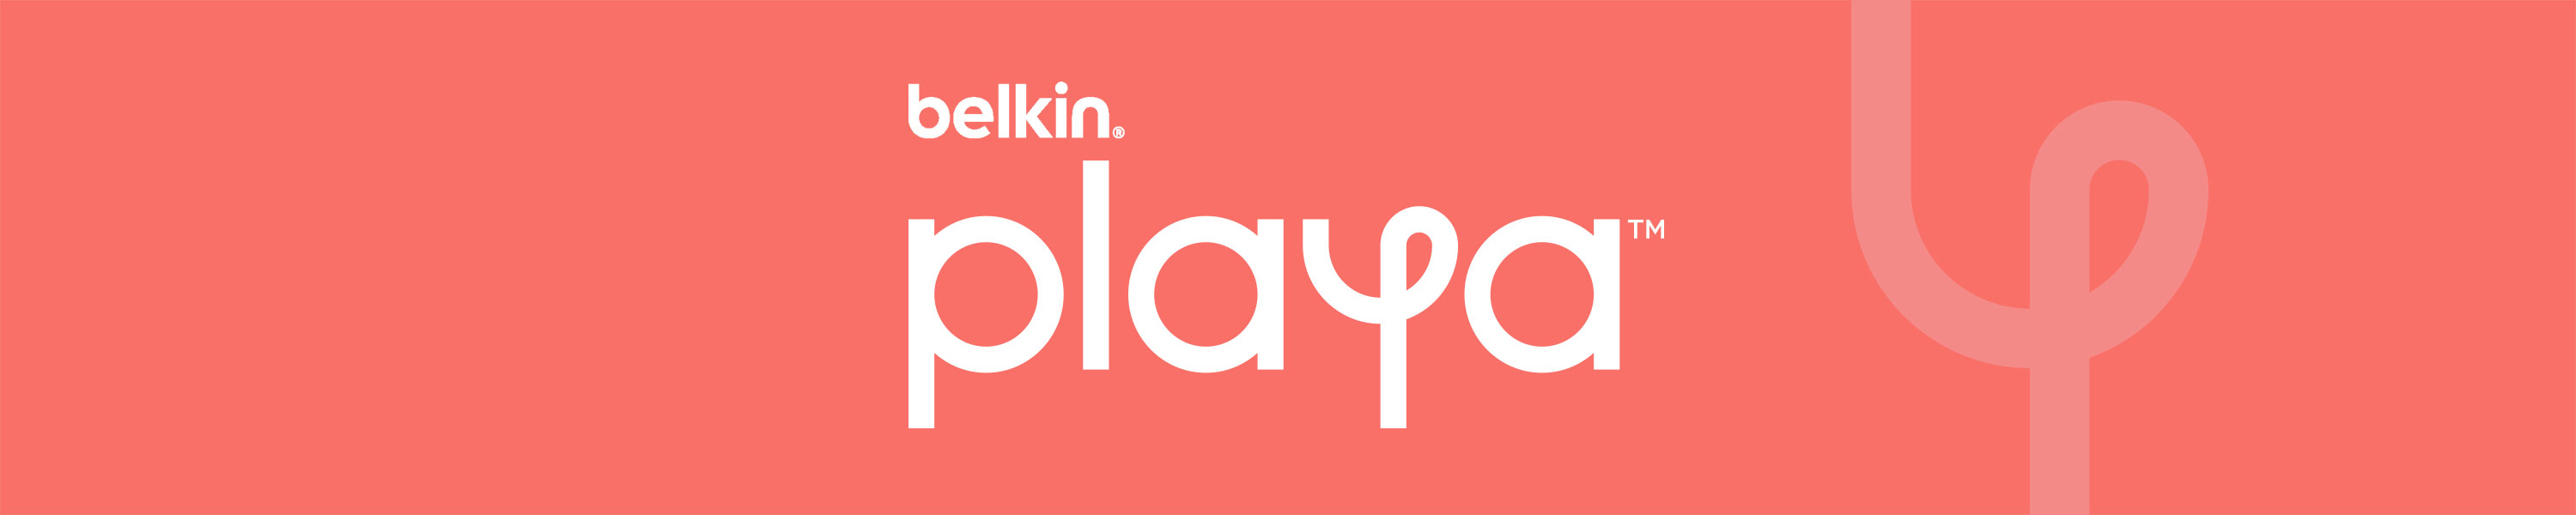 Playa logo on a colored background